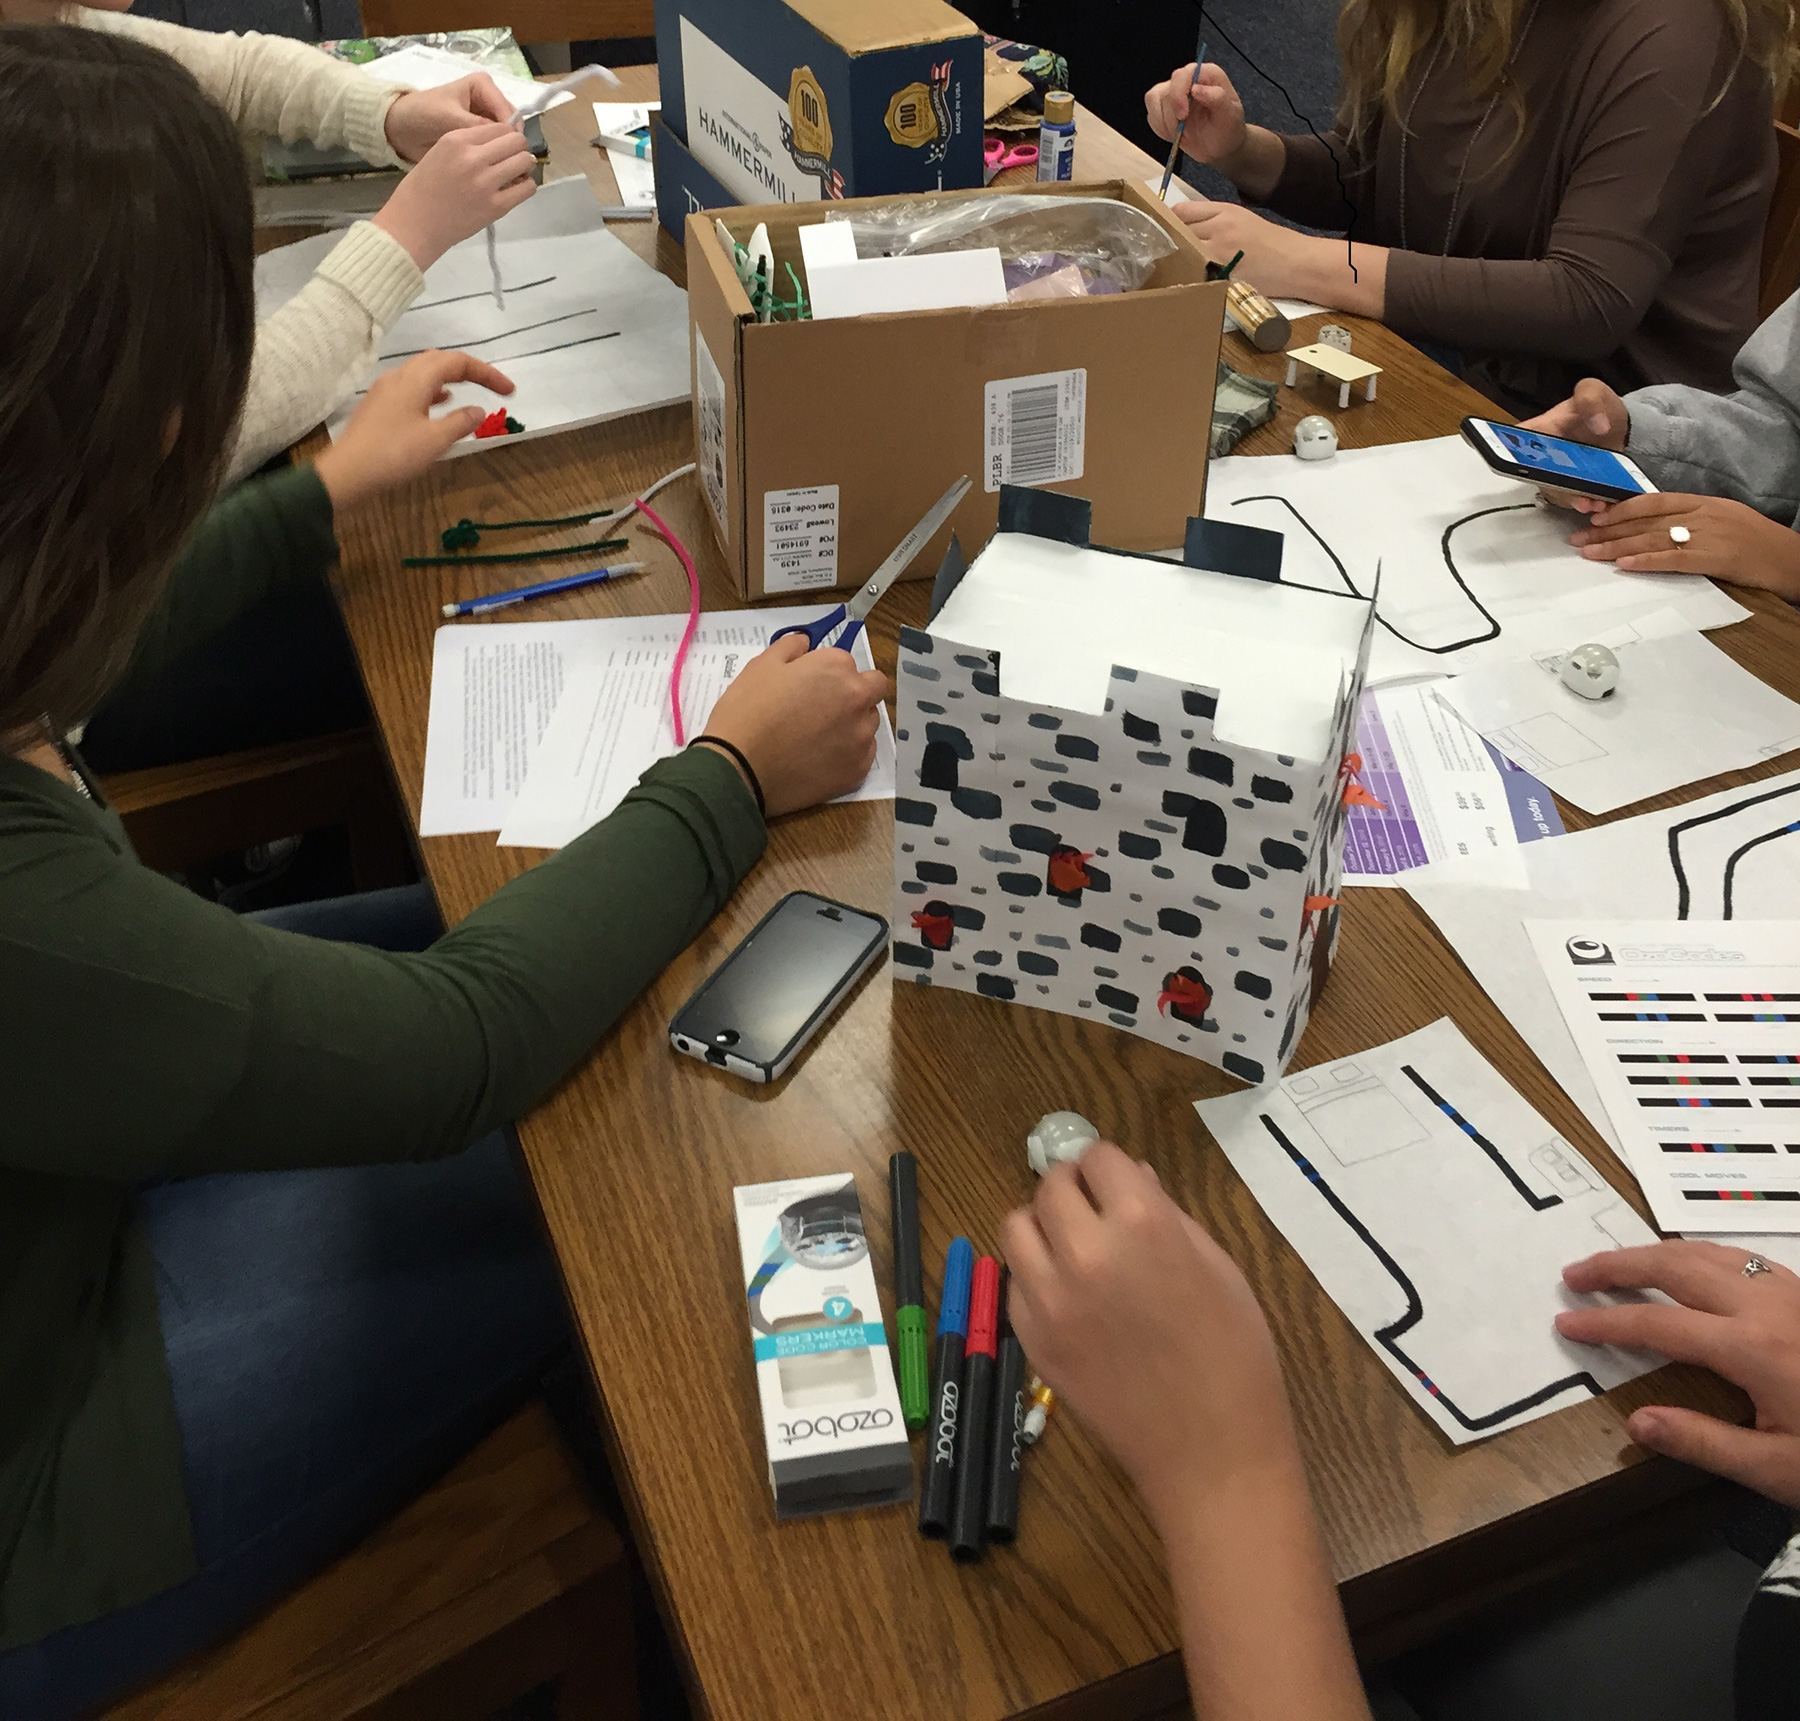 Some group members built a set while others worked on coding the Ozobots with markers.